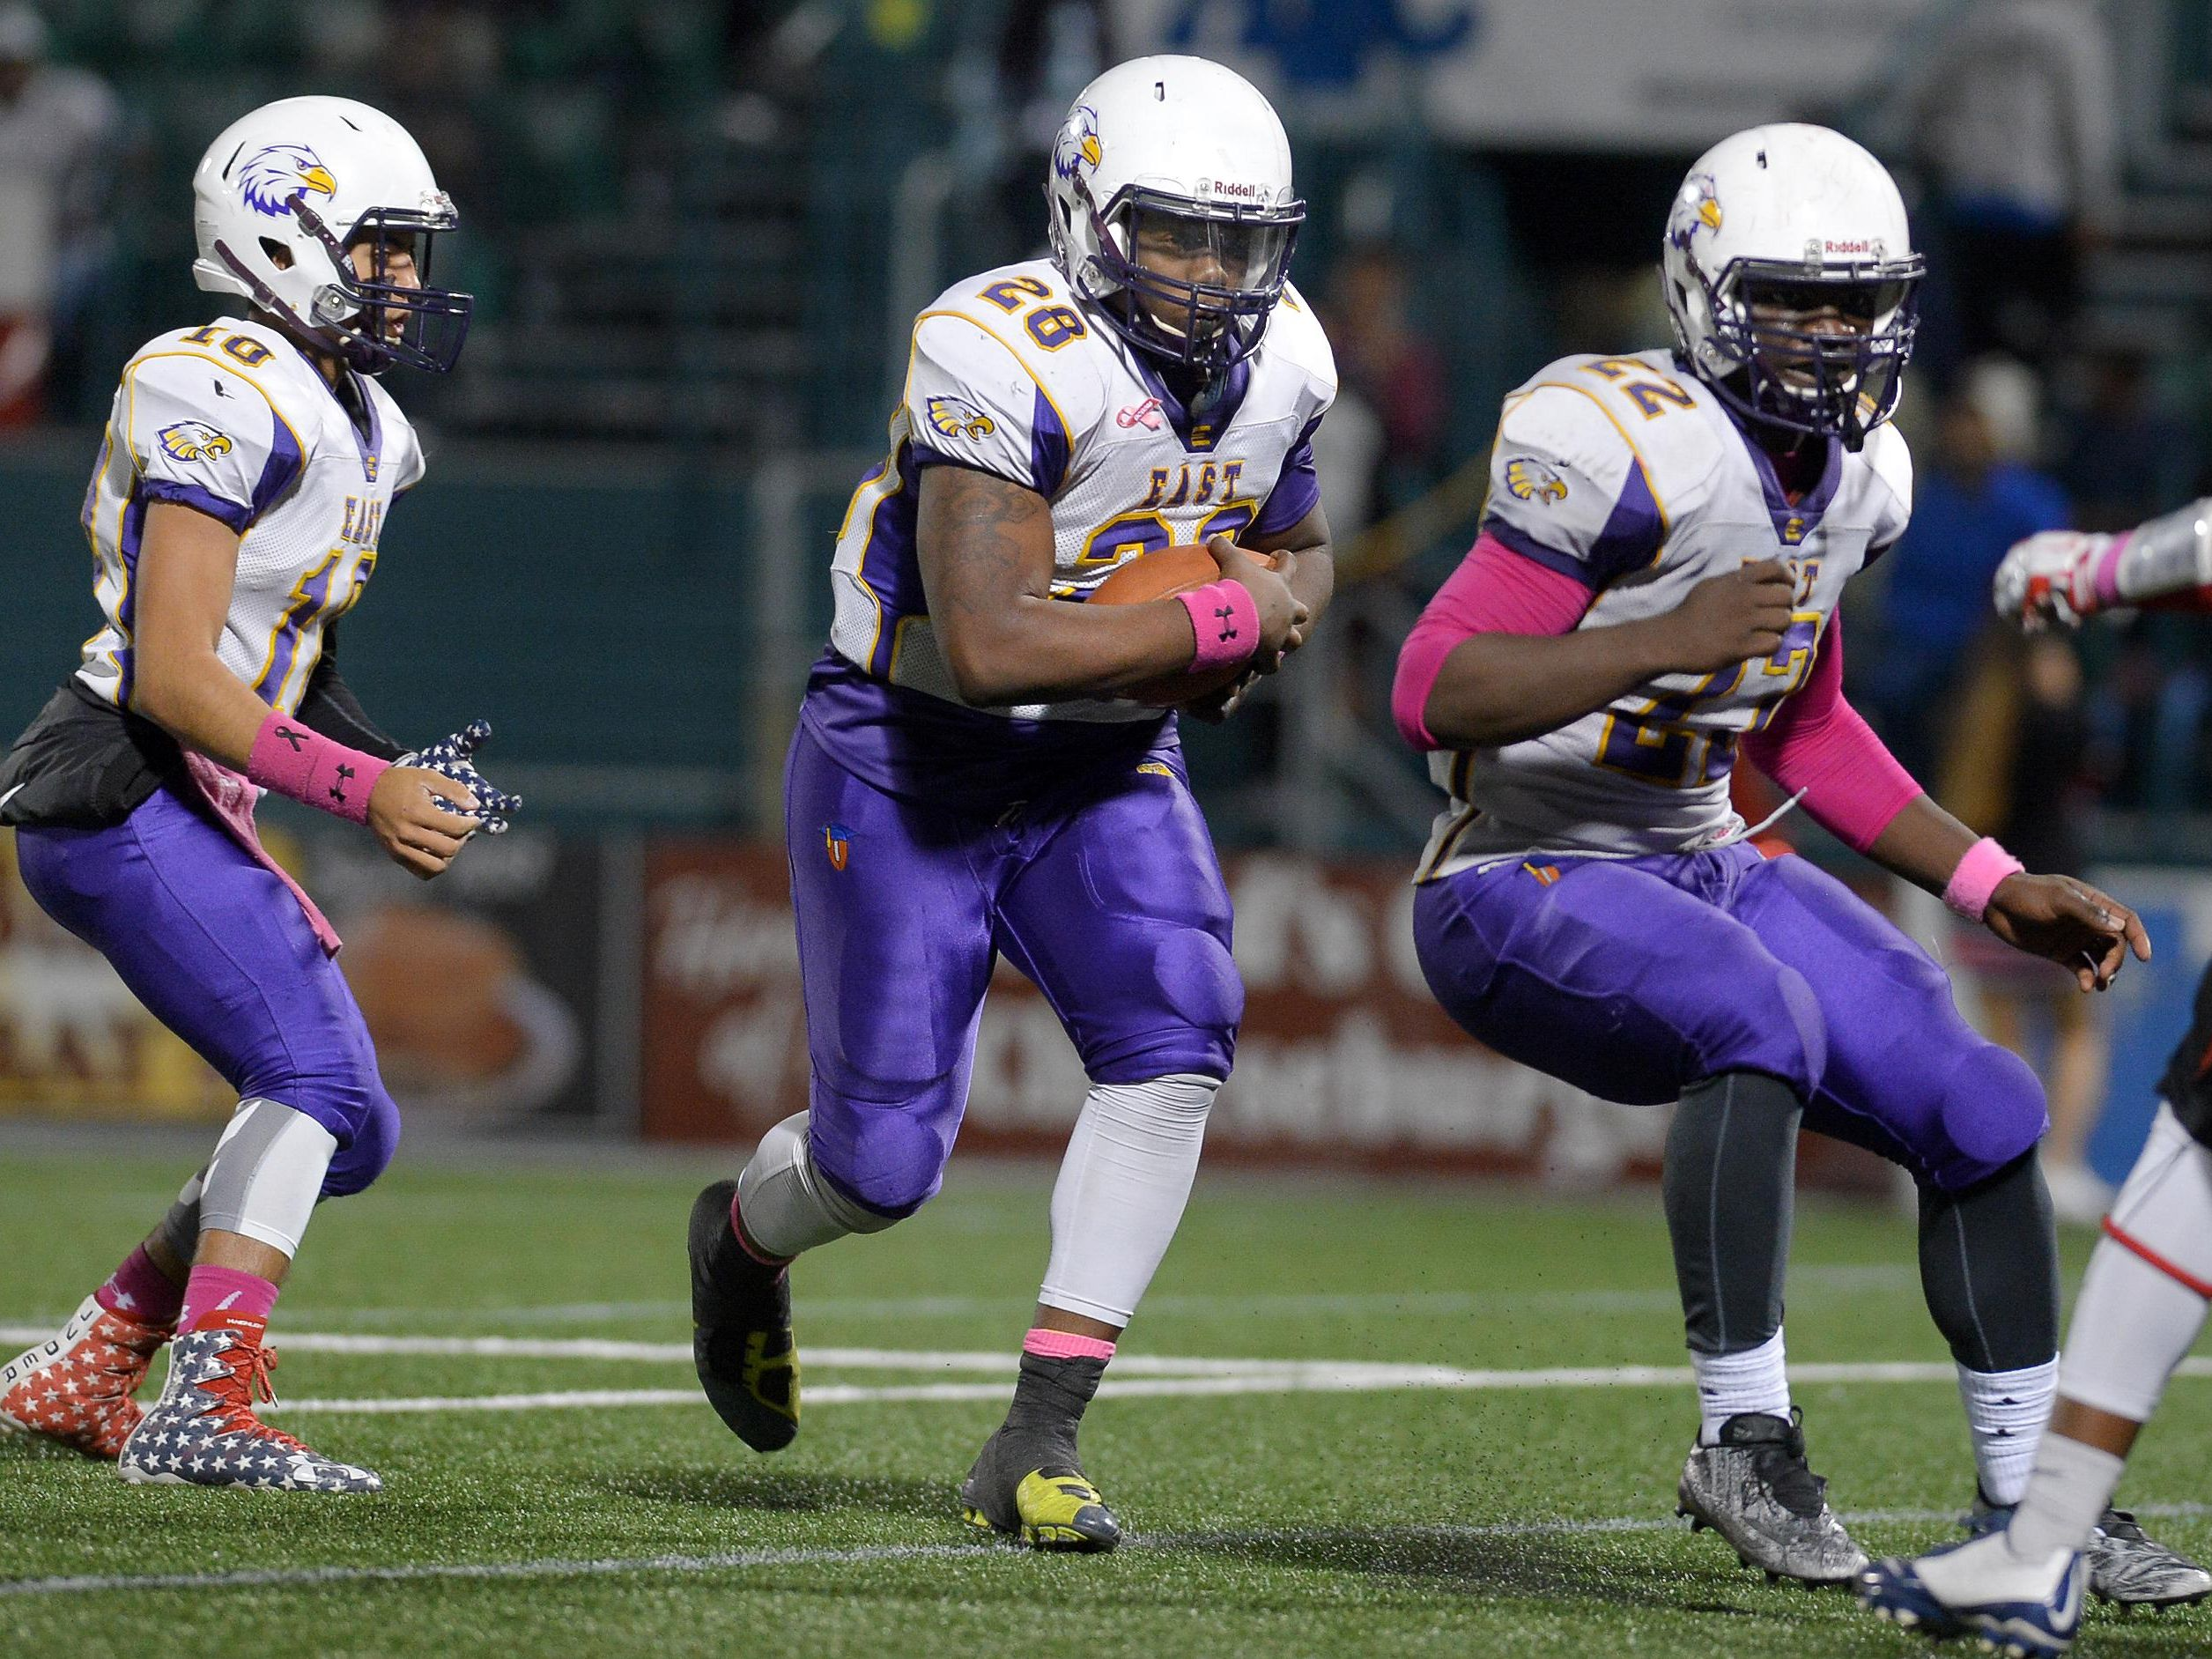 East's Deljon Johnson, center, carries the ball for a two-point conversion.